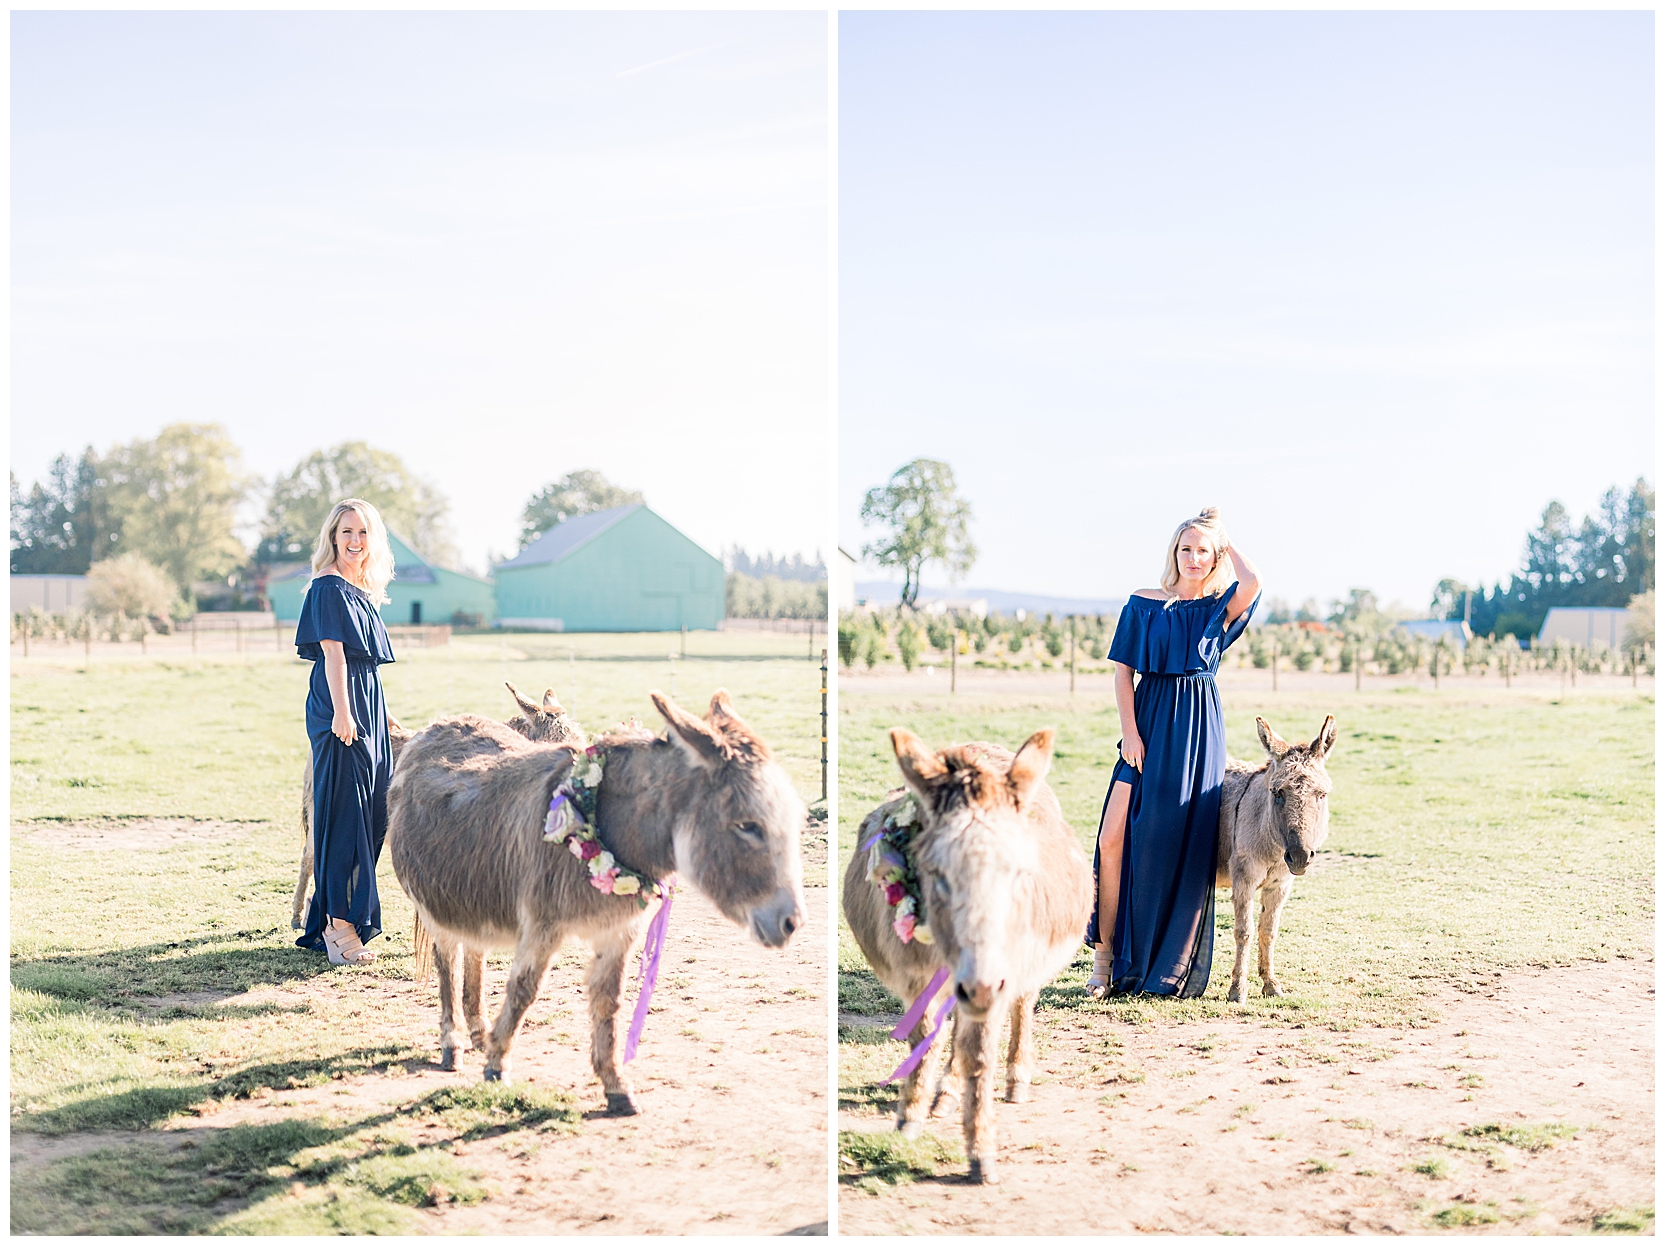 jessicafredericks_st petersburg_wedding_photographer_bridesmaid_farm_donkey_flower crown_inspo_0006.jpg